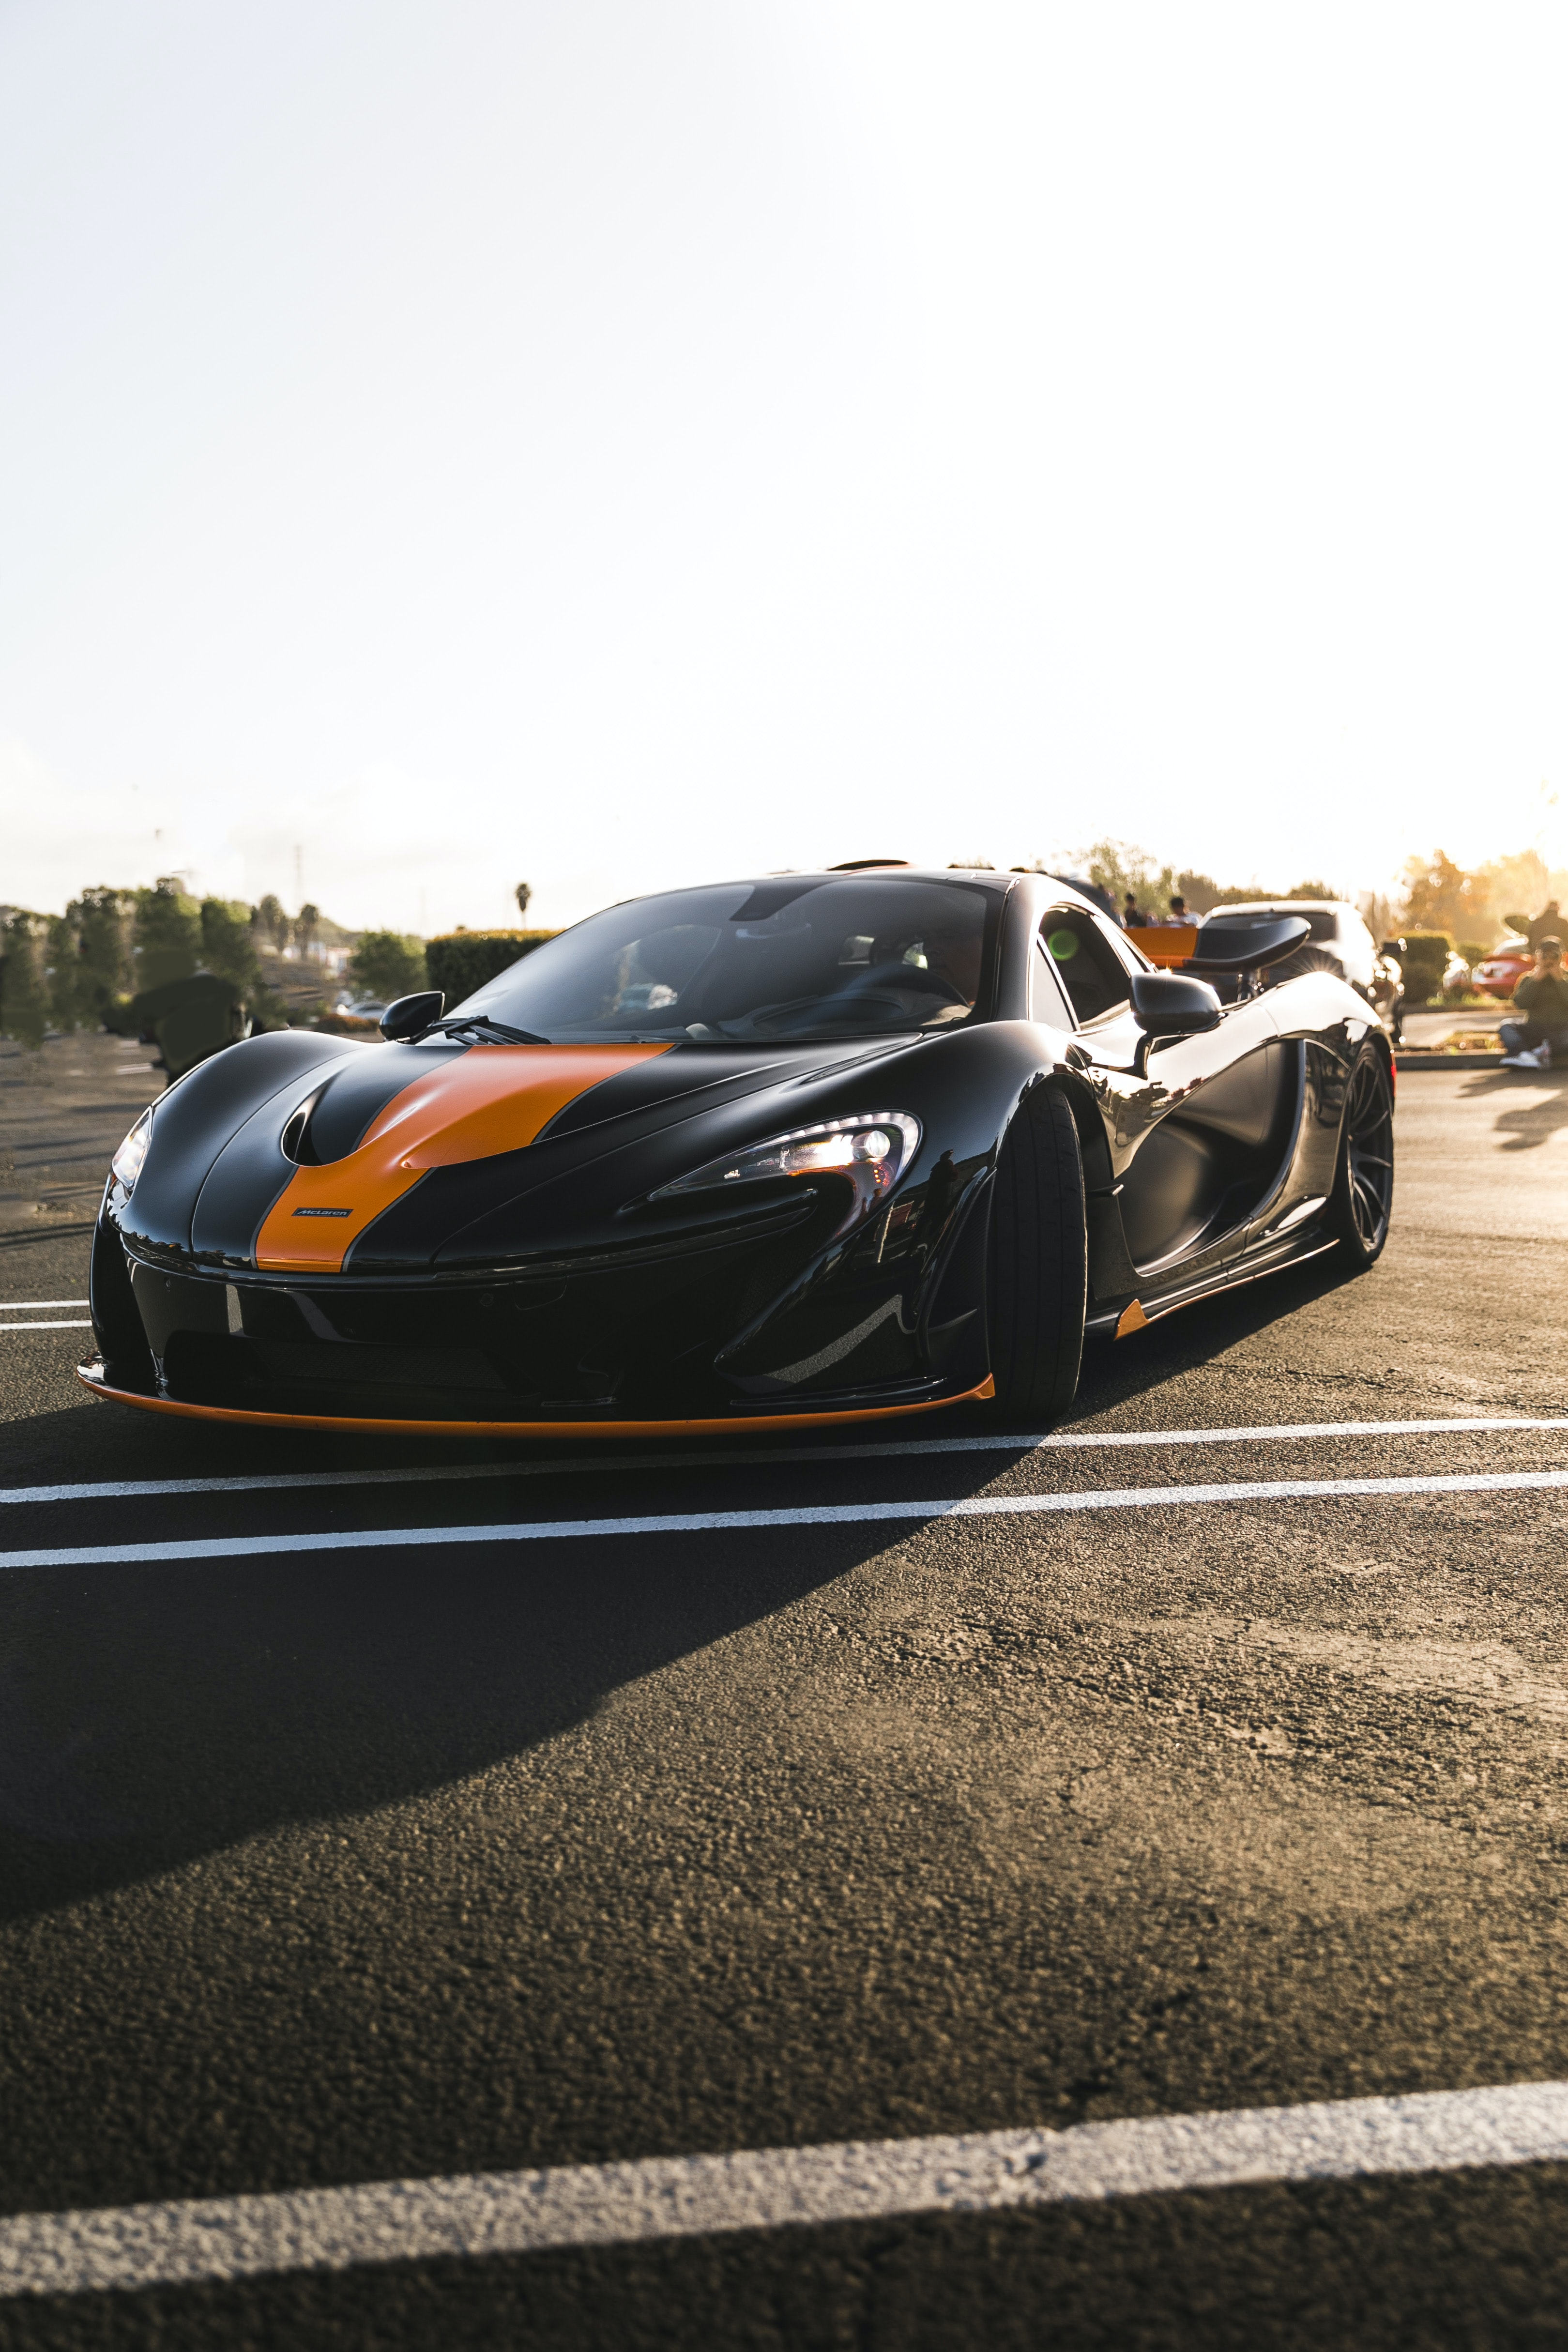 black and orange sports car under clear sky during daytime